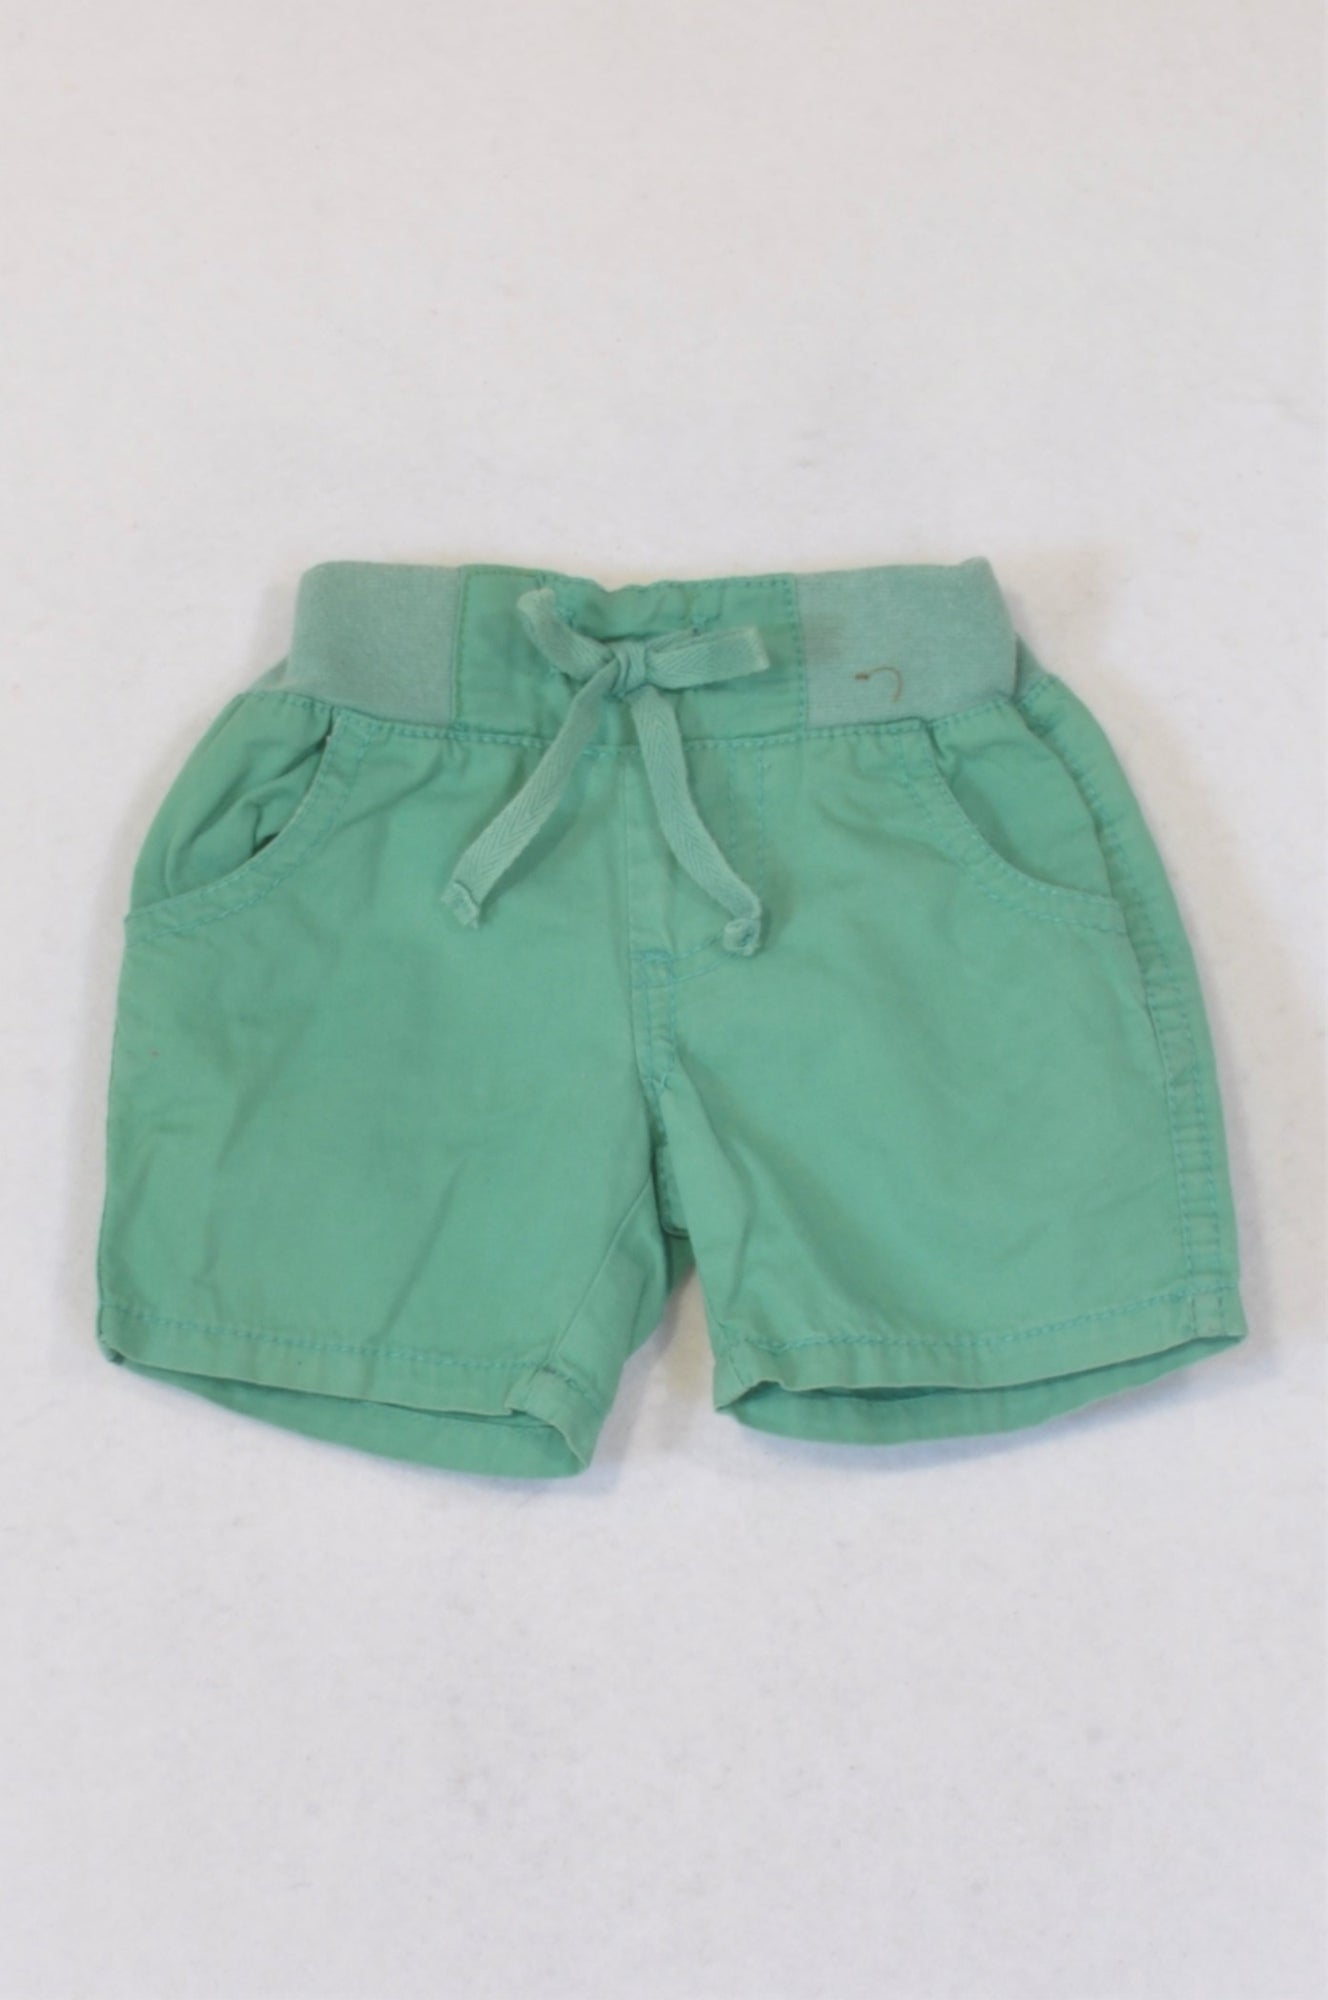 Cotton On Soft Green Banded Shorts Girls 0-3 months